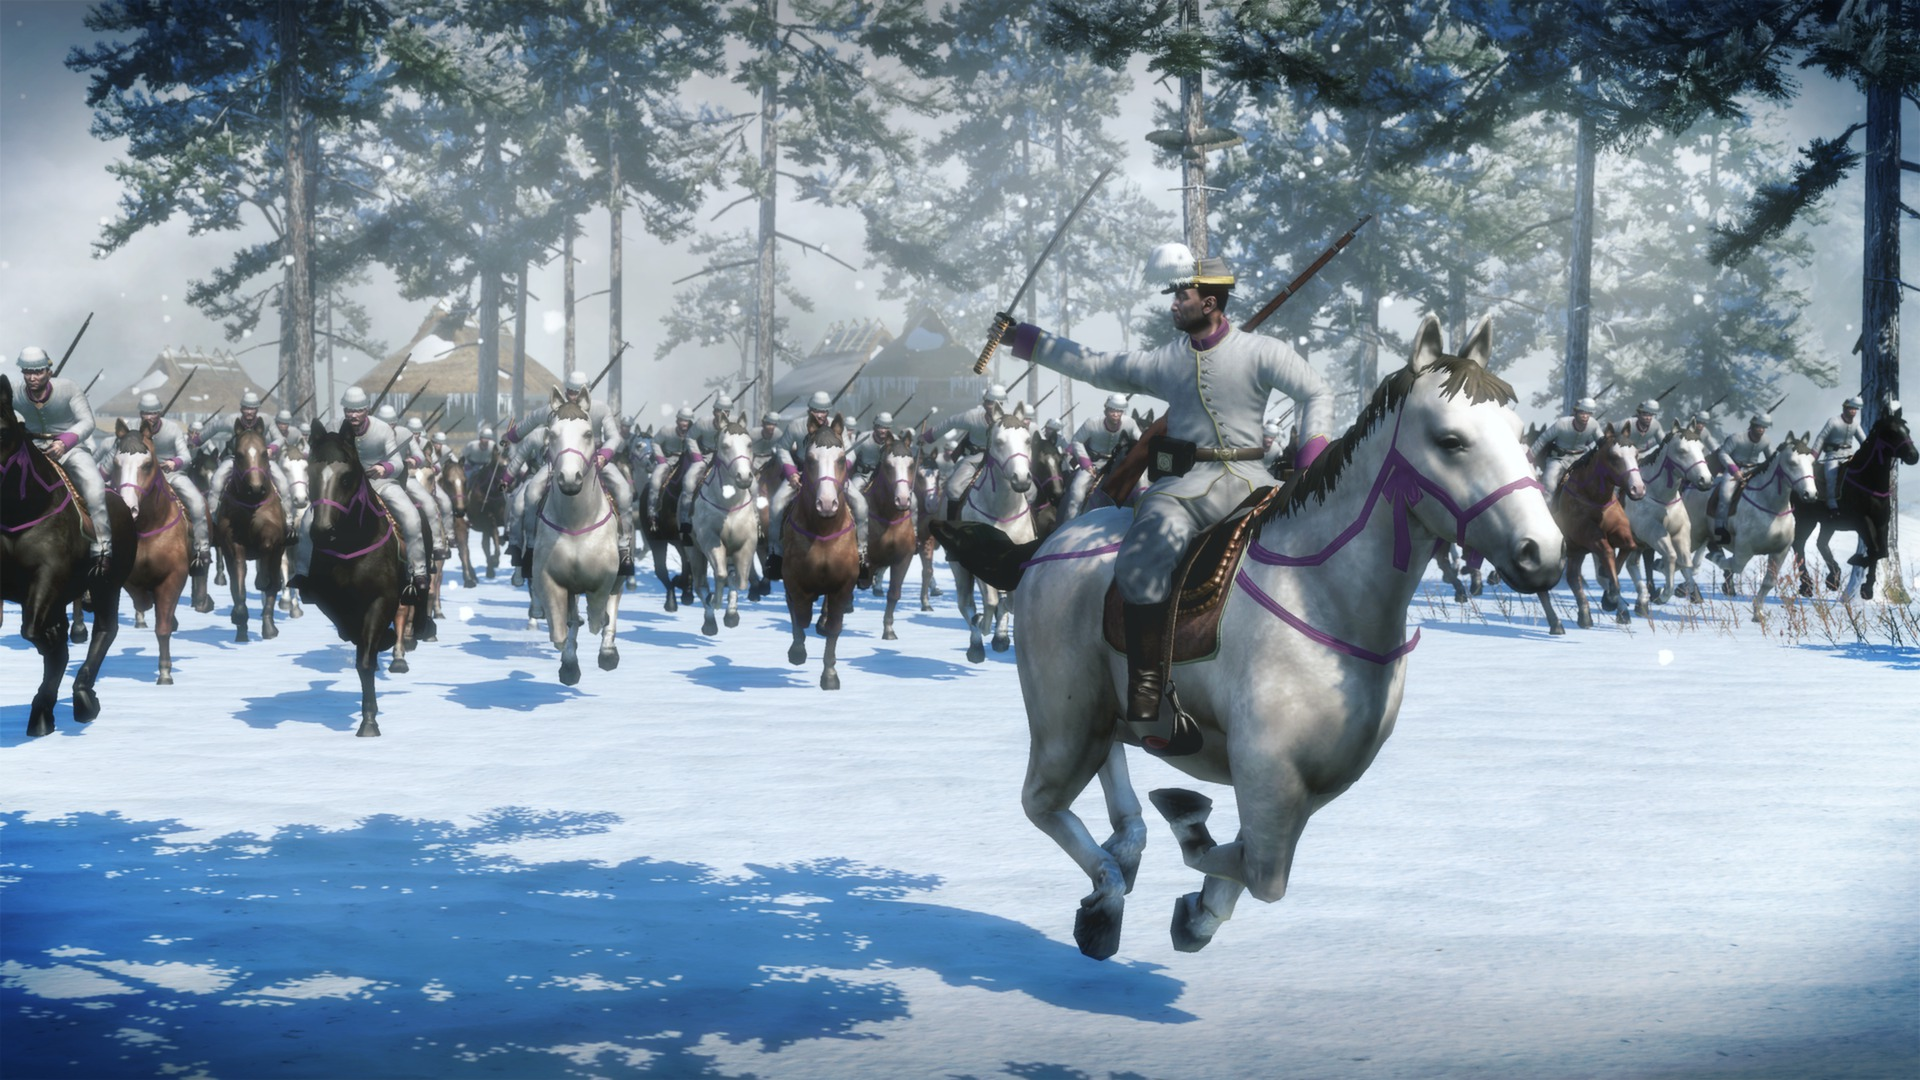 total war shogun how to play coop 3 players